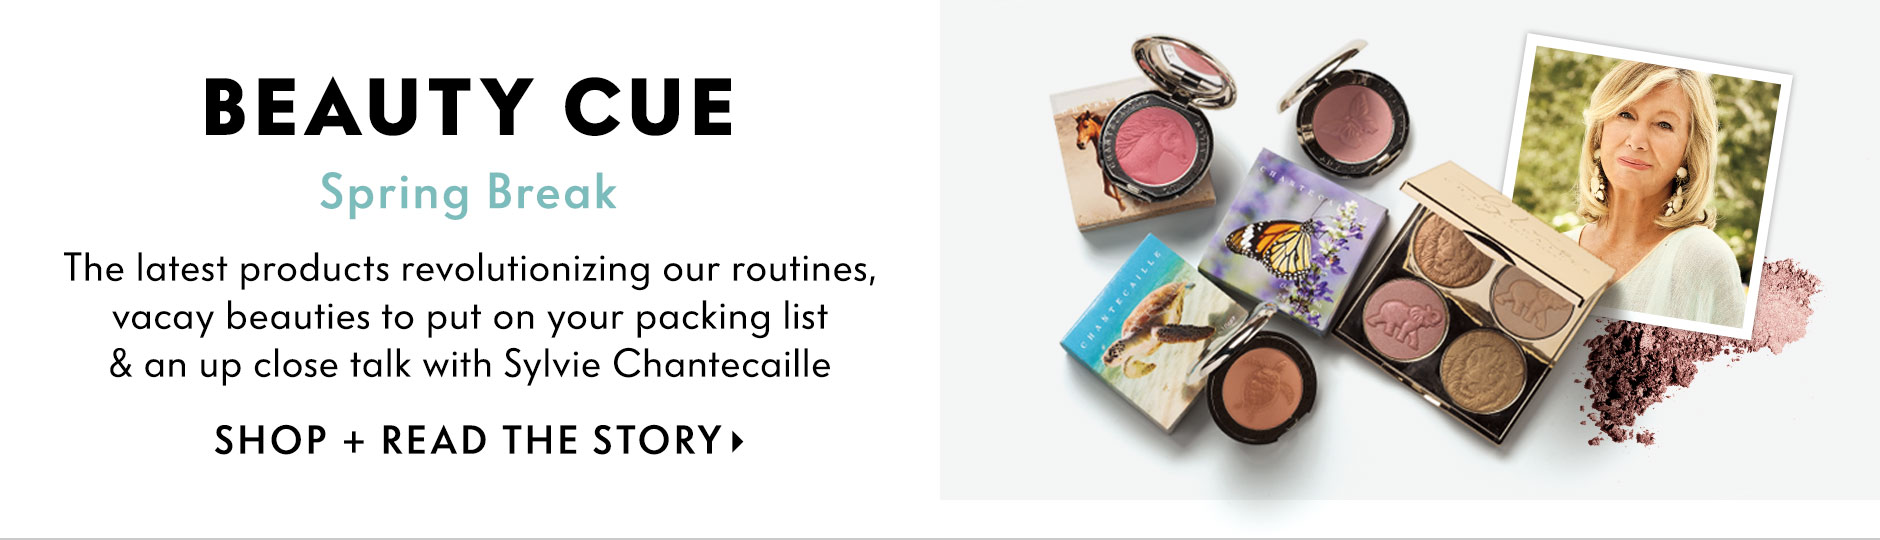 Magazine: Beauty Cue - March 2018